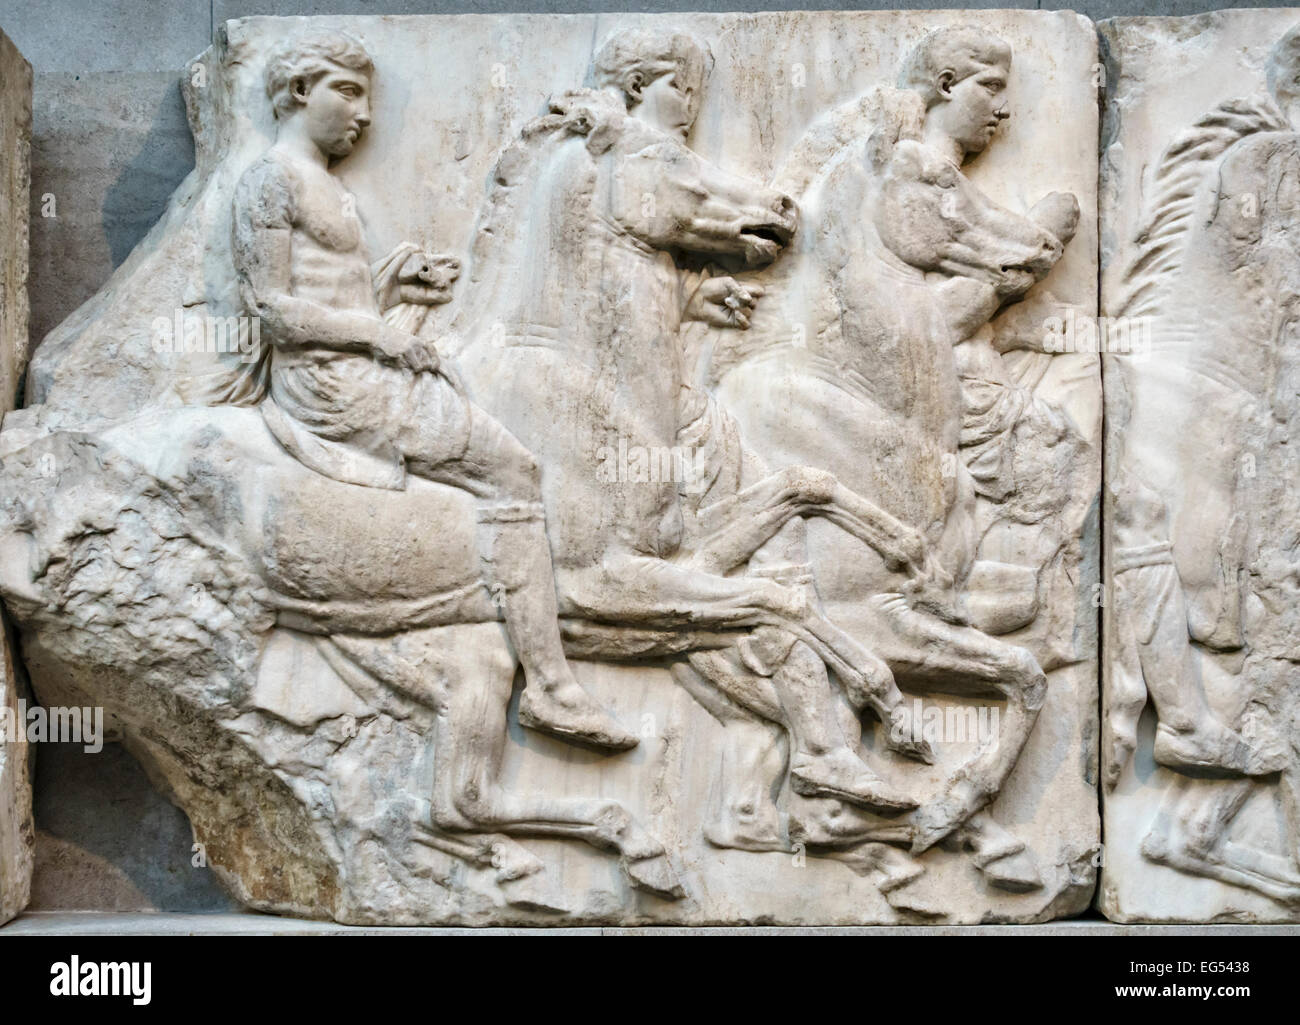 The British Museum, London, UK. A group of horsemen from the South Frieze of the Parthenon (Athens), part of the Stock Photo